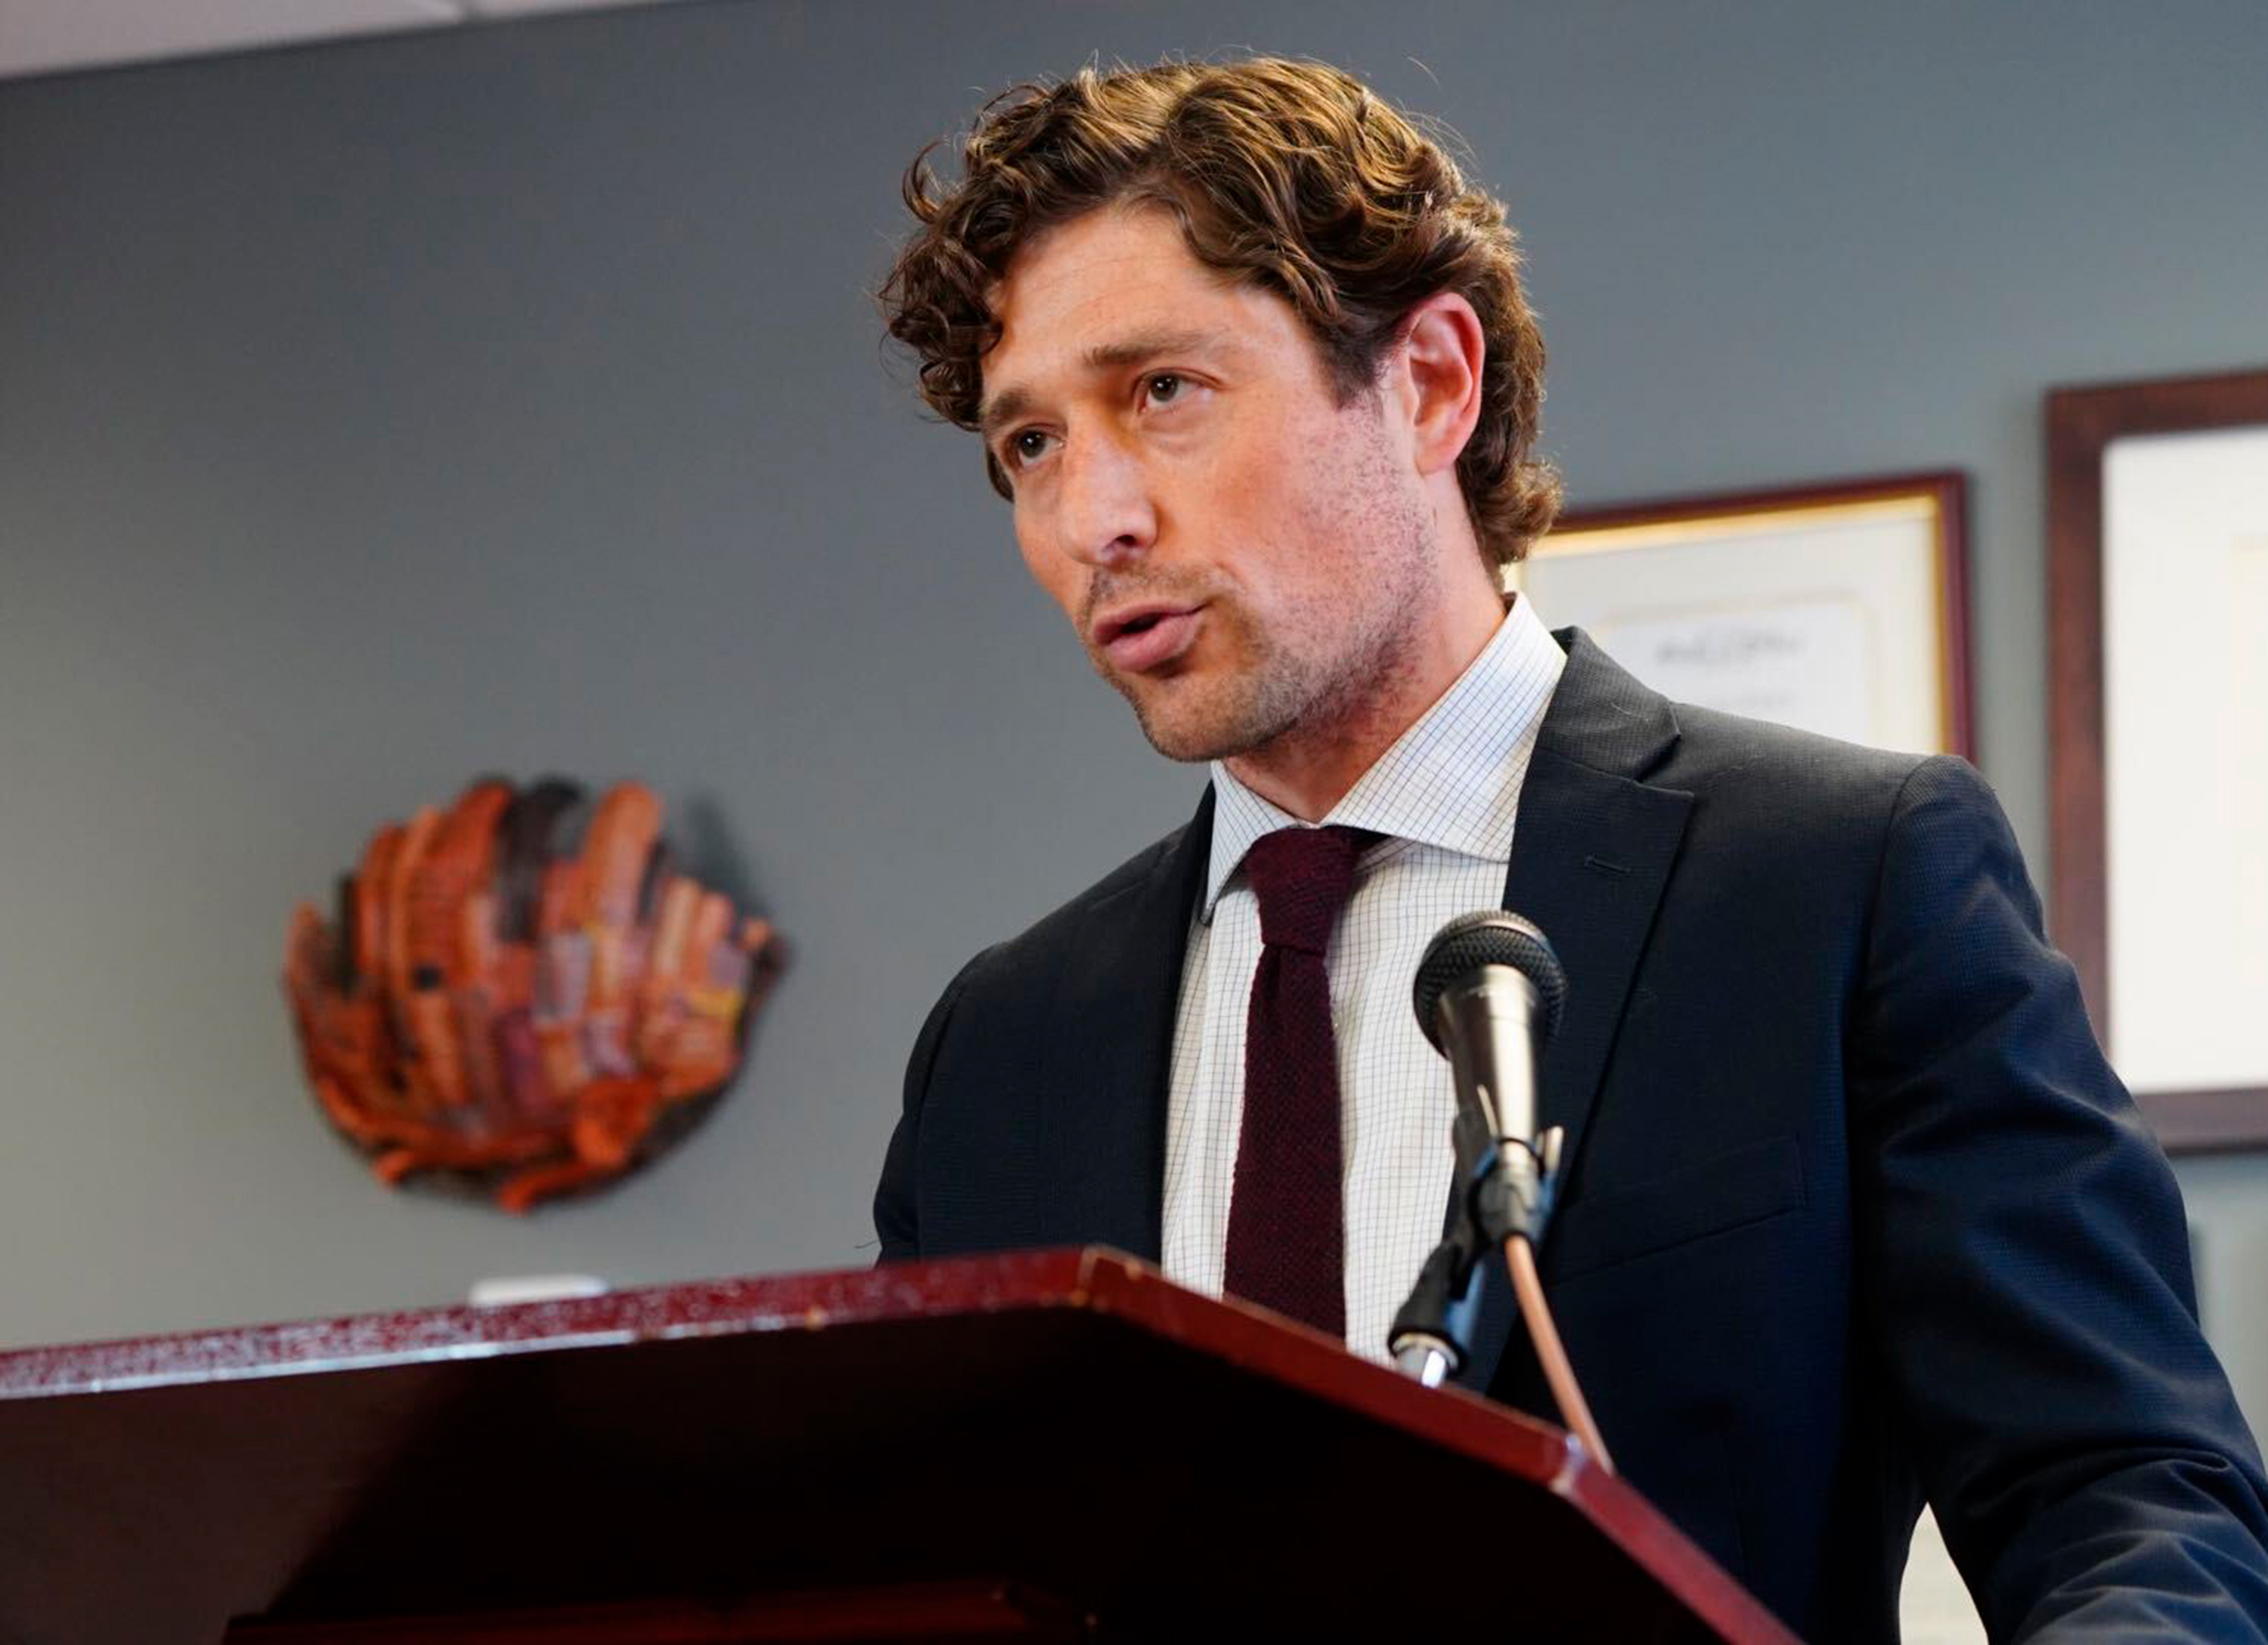 Minneapolis Mayor Jacob Frey speaks during a news conference at City Hall in Minneapolis on May 27, 2020.